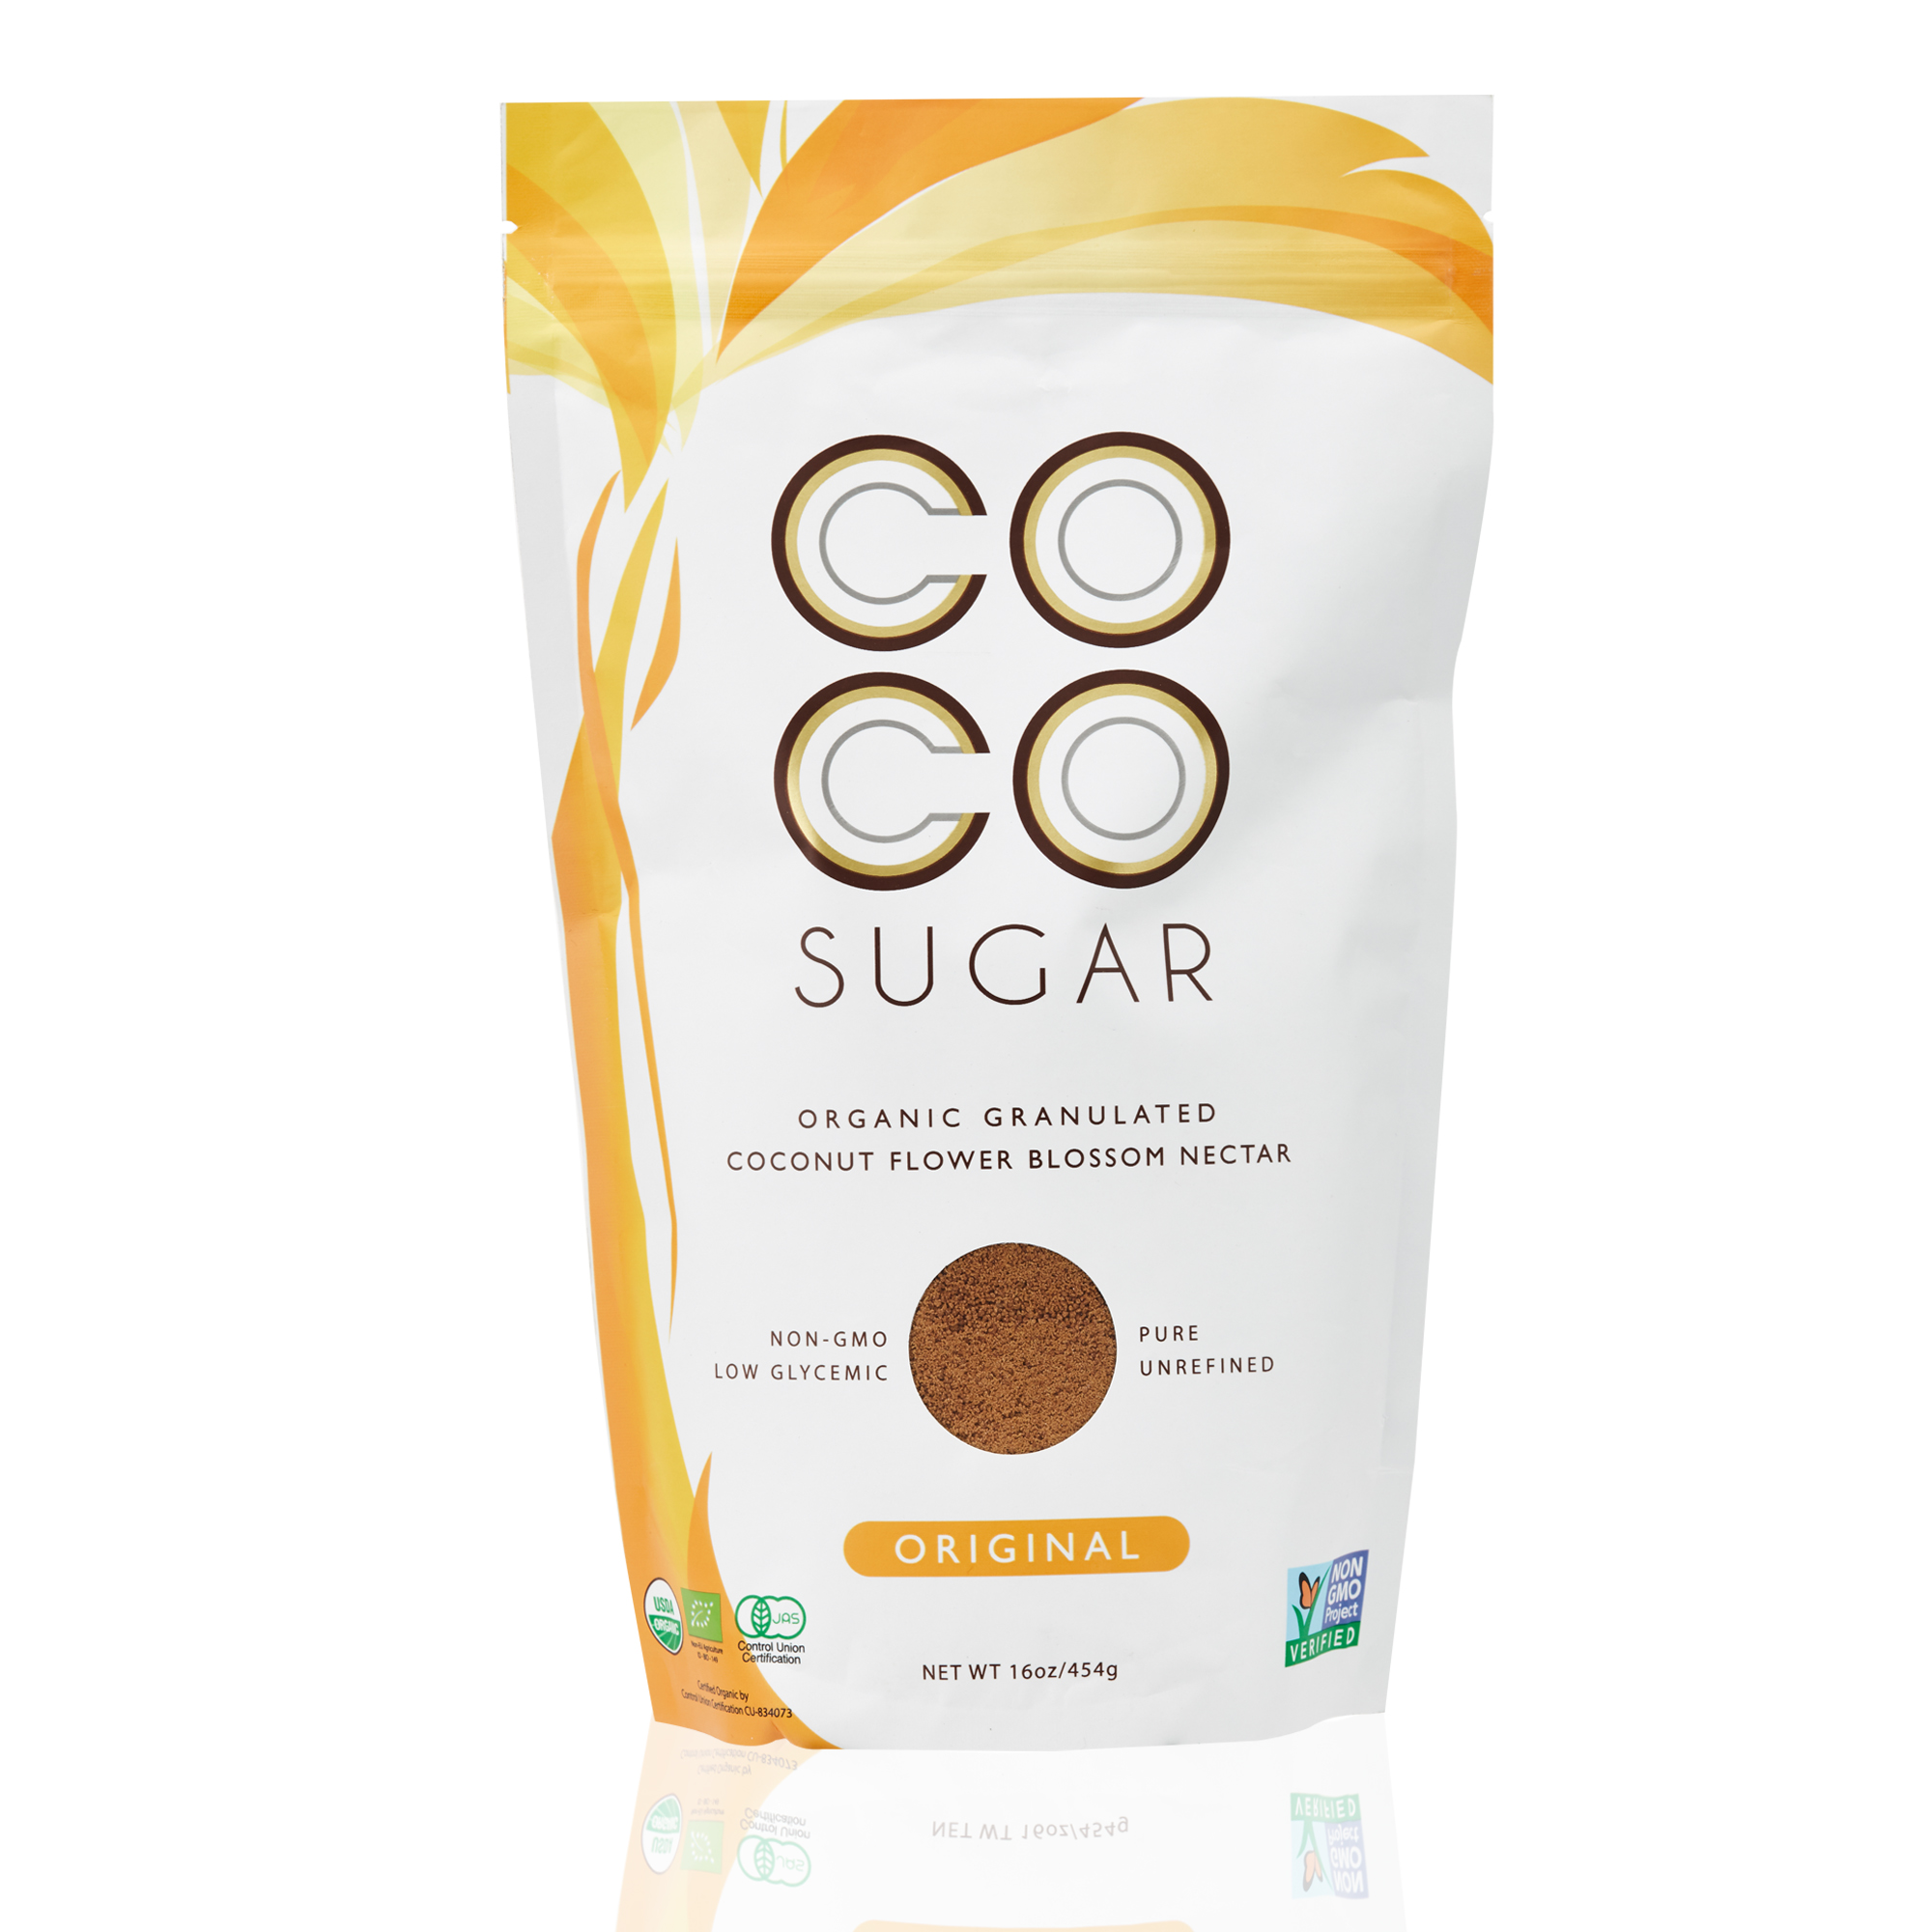 [MPLUS] Coco Sugar Organic Granulated Coconut Flower Blossom Nectar 454Gm